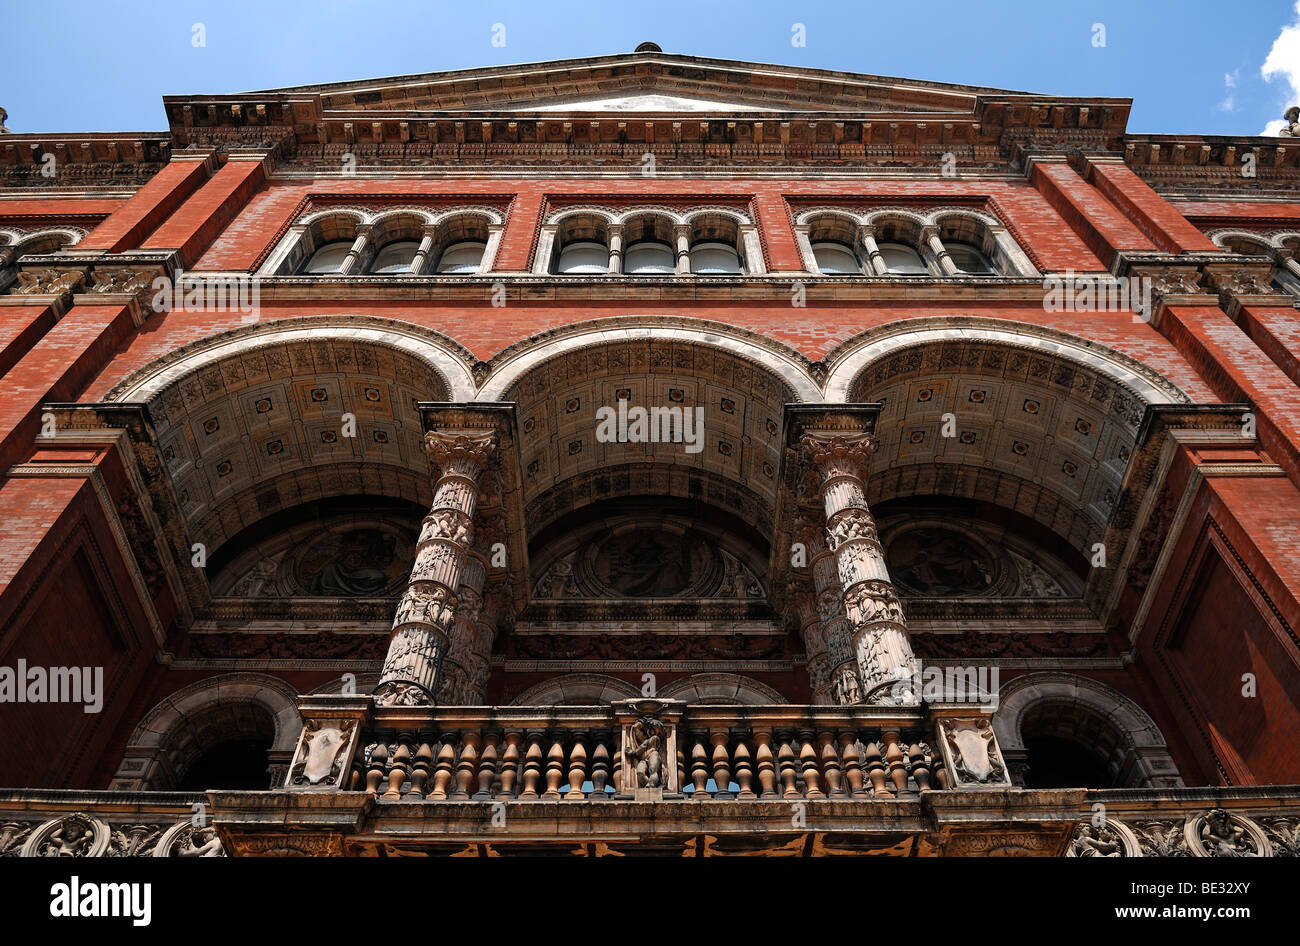 Gallery of the Victoria & Albert Museum, detail, seen from the courtyard, 1-5 Exhibition Road, London, England, Stock Photo